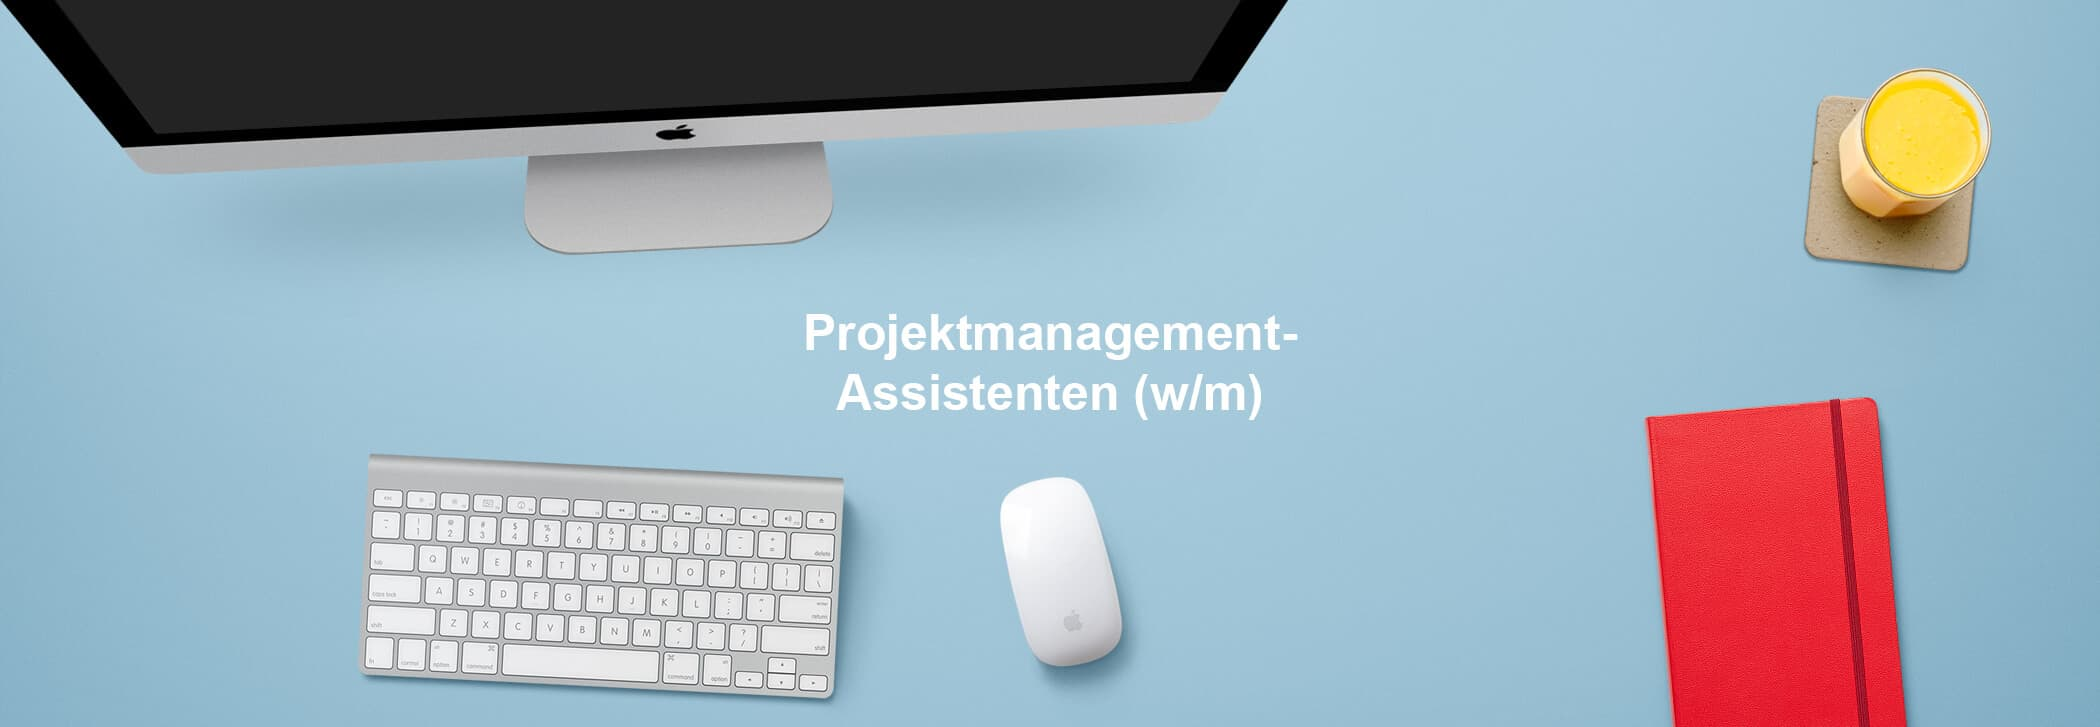 Projektmanagement-Assistent